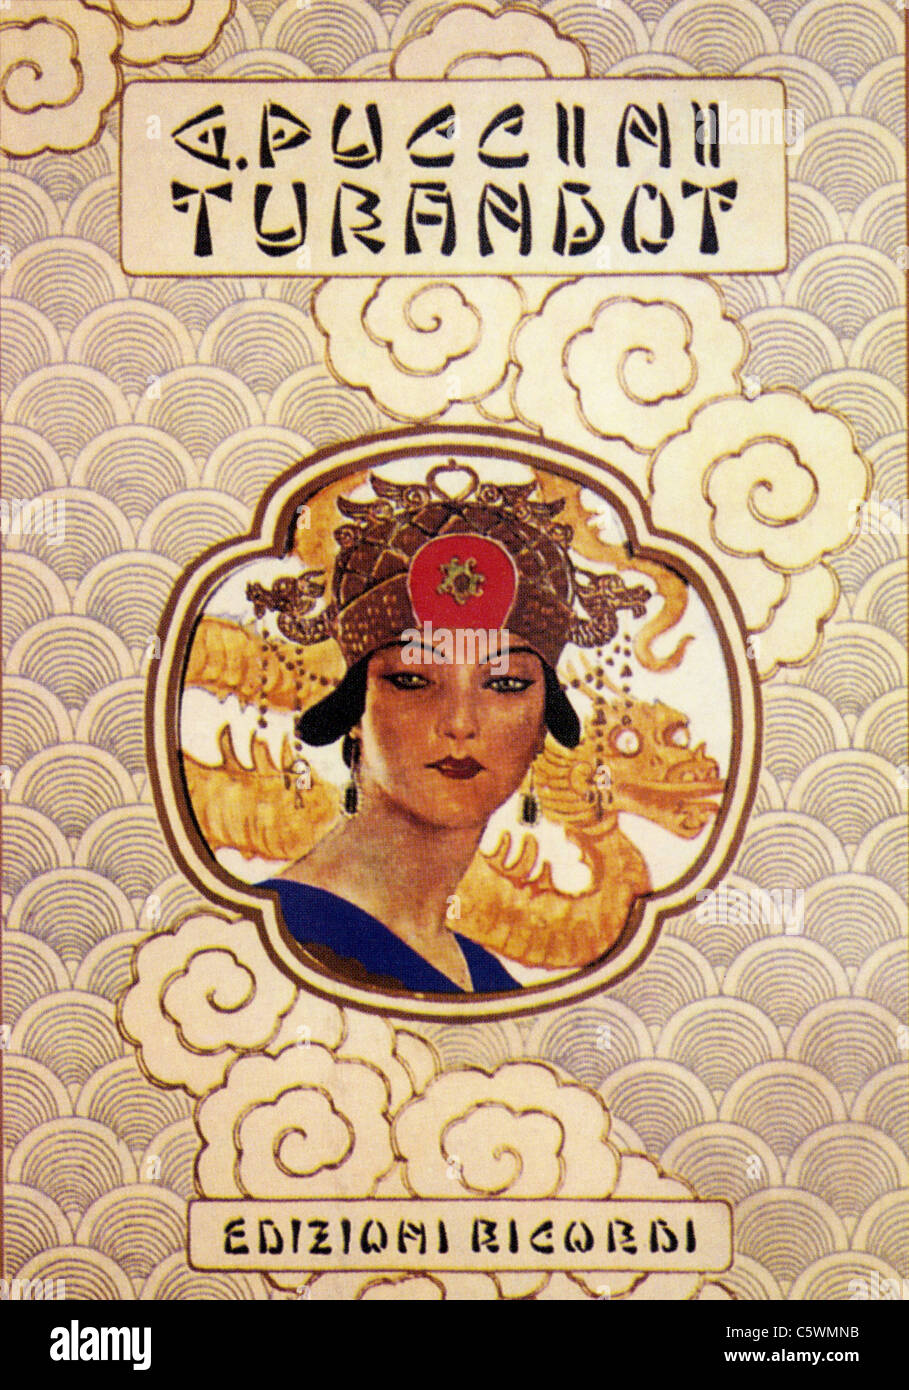 https://c8.alamy.com/comp/C5WMNB/turandot-poster-for-the-1926-production-of-puccinis-opera-at-la-scala-C5WMNB.jpg